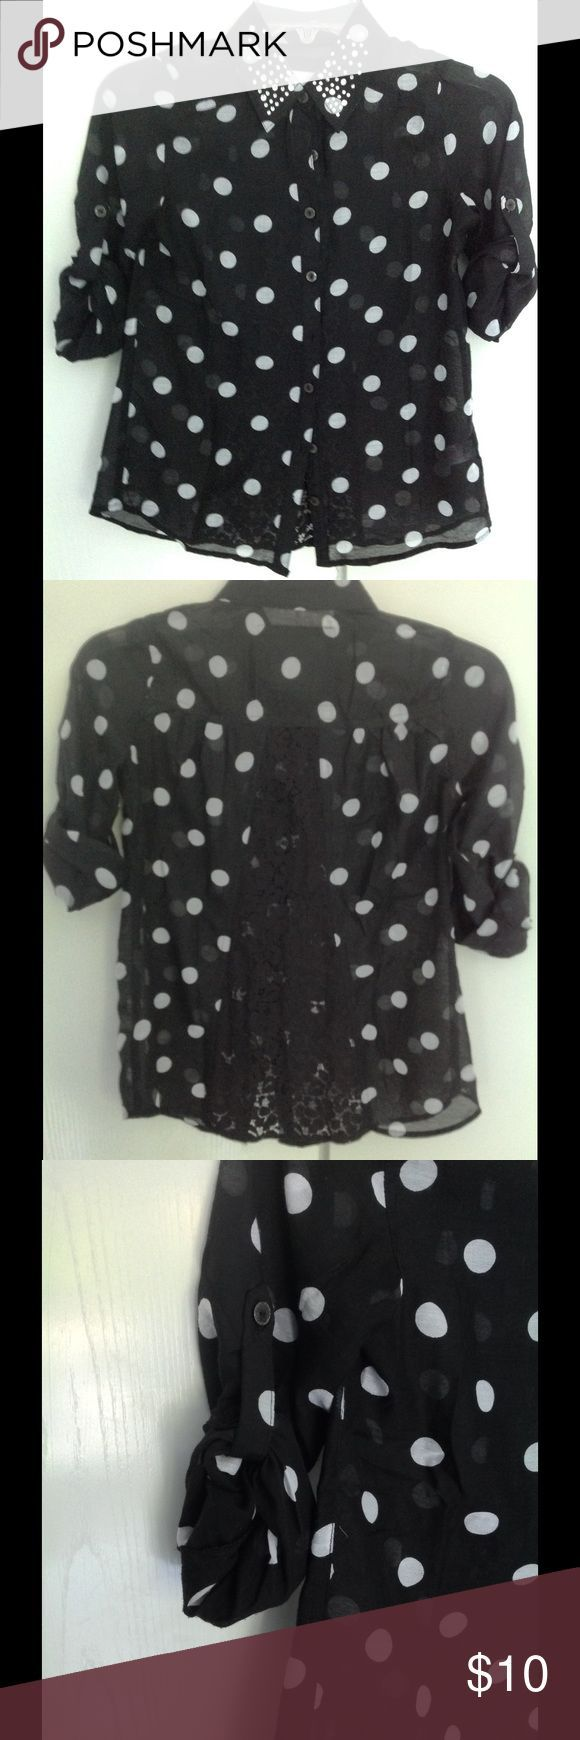 WEEKEND SALE! Black sheer blouse Justice Roll up sleeves that can ban be worn buttoned up or rolled down.  Gorgeous lace accent on the back.  Rhinestones on the collar.  Sheer Justice Shirts & Tops Blouses - pale blue blouse, the white blouse, the white blouse *sponsored https://www.pinterest.com/blouses_blouse/ https://www.pinterest.com/explore/blouse/ https://www.pinterest.com/blouses_blouse/red-blouse/ http://www.rosegal.com/blouses-34/